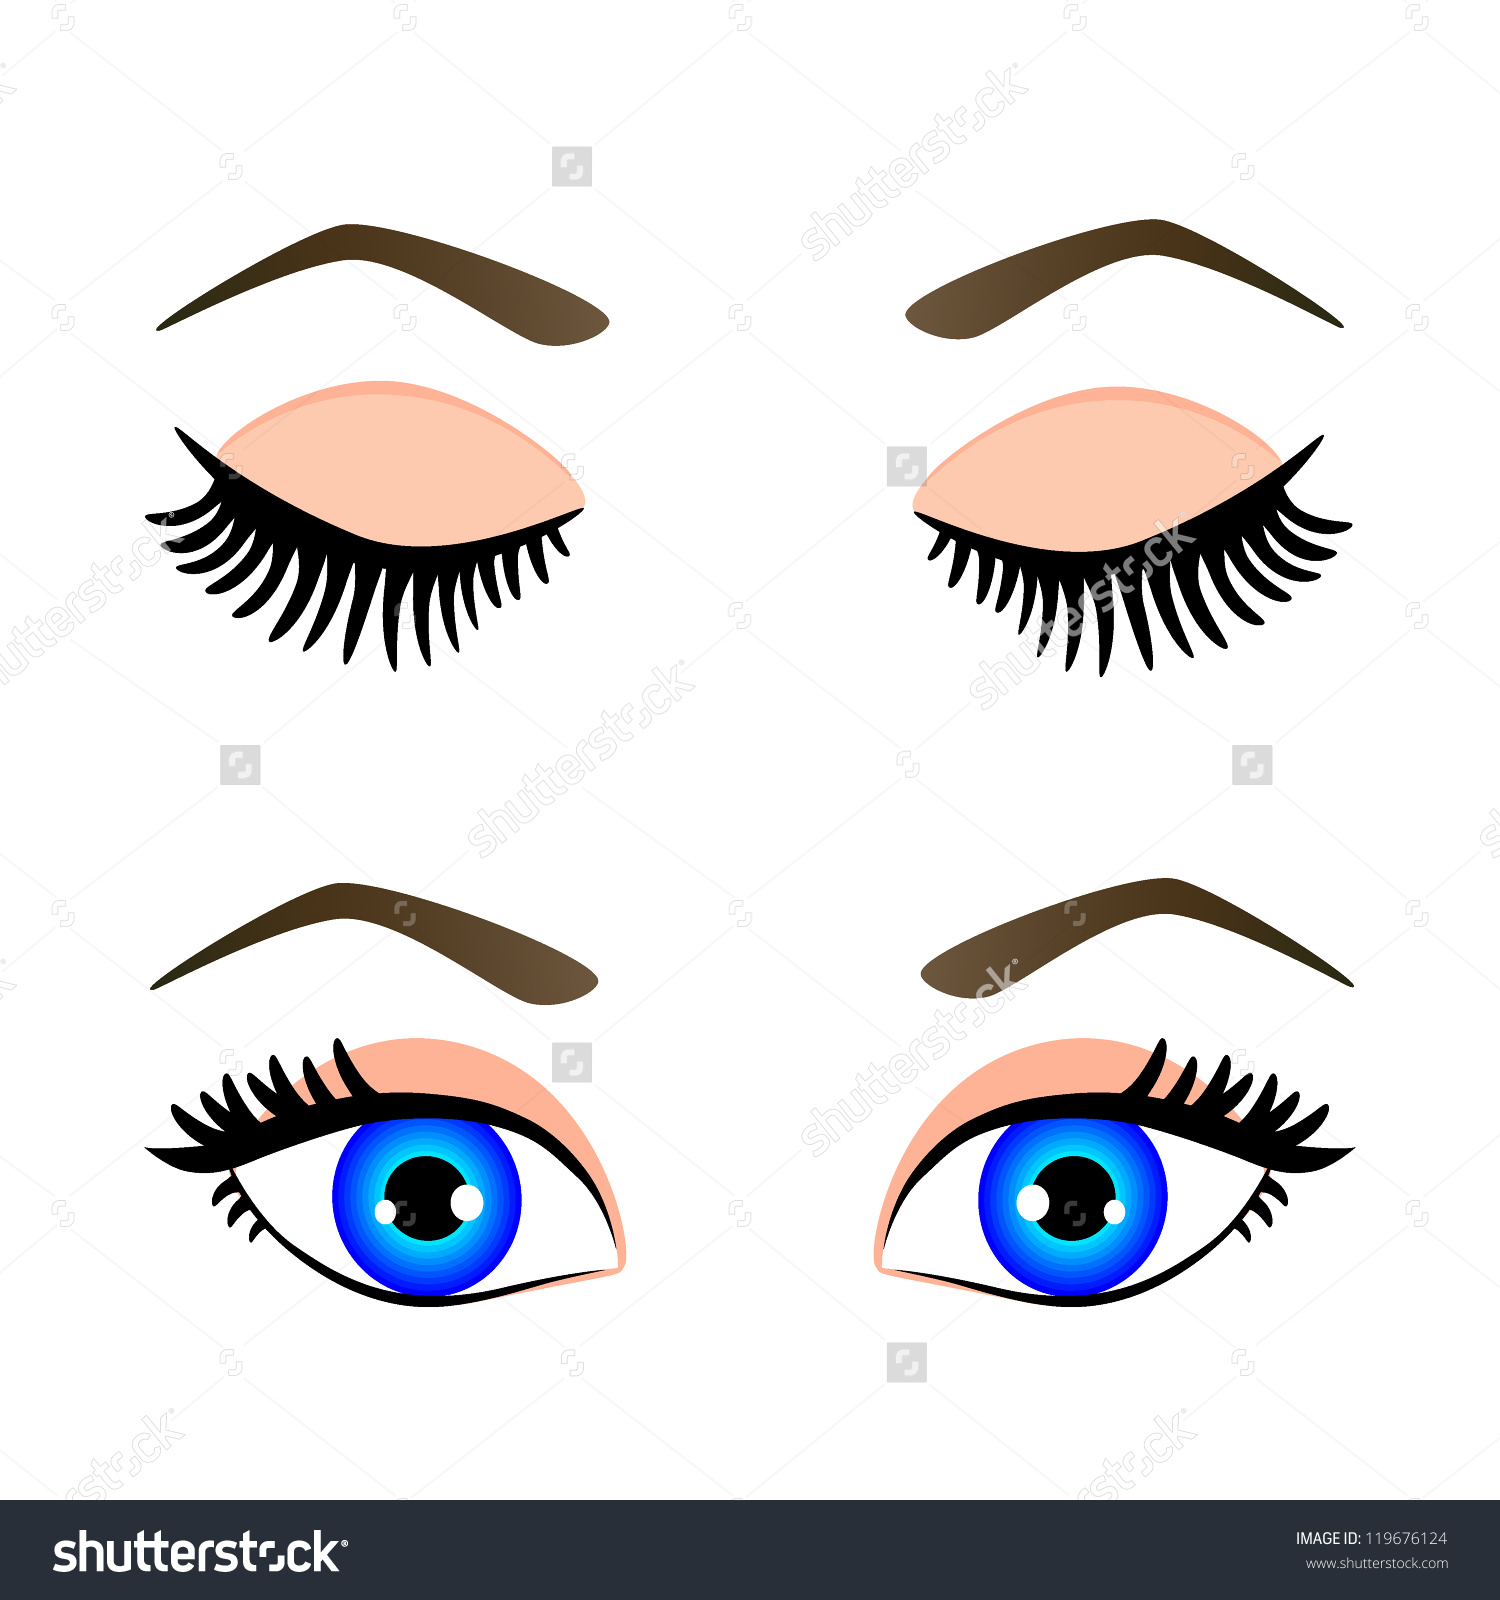 Open clipart blue eye.